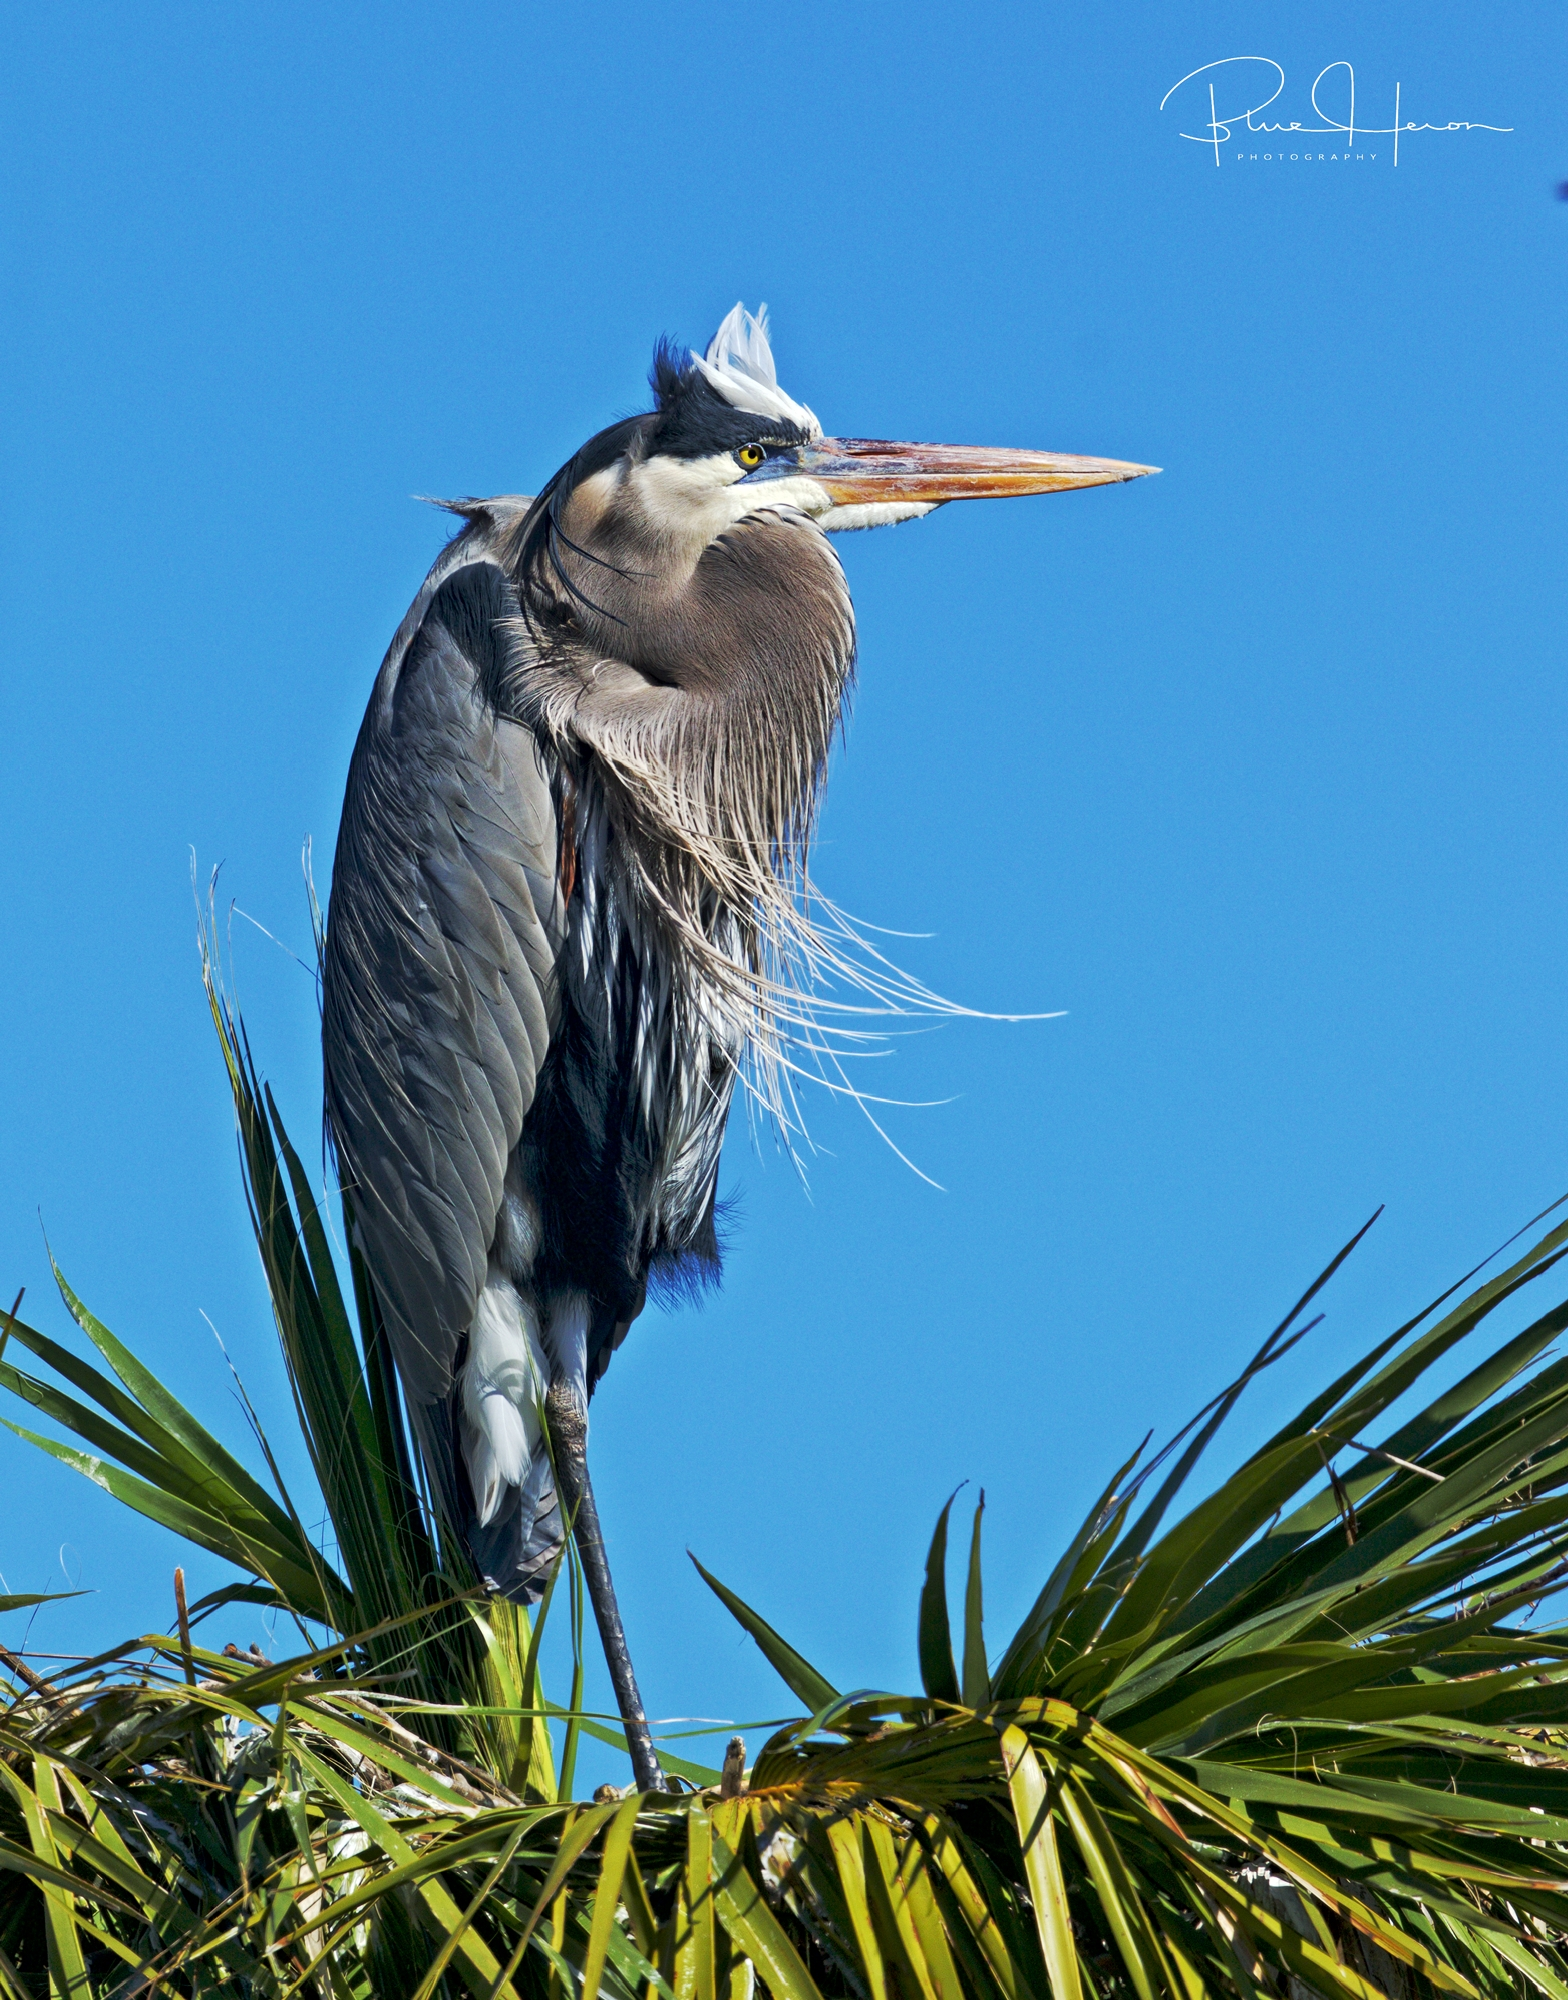 Hope to visit the Great Blue Herons soon. I don't think they want Ratatouille though..